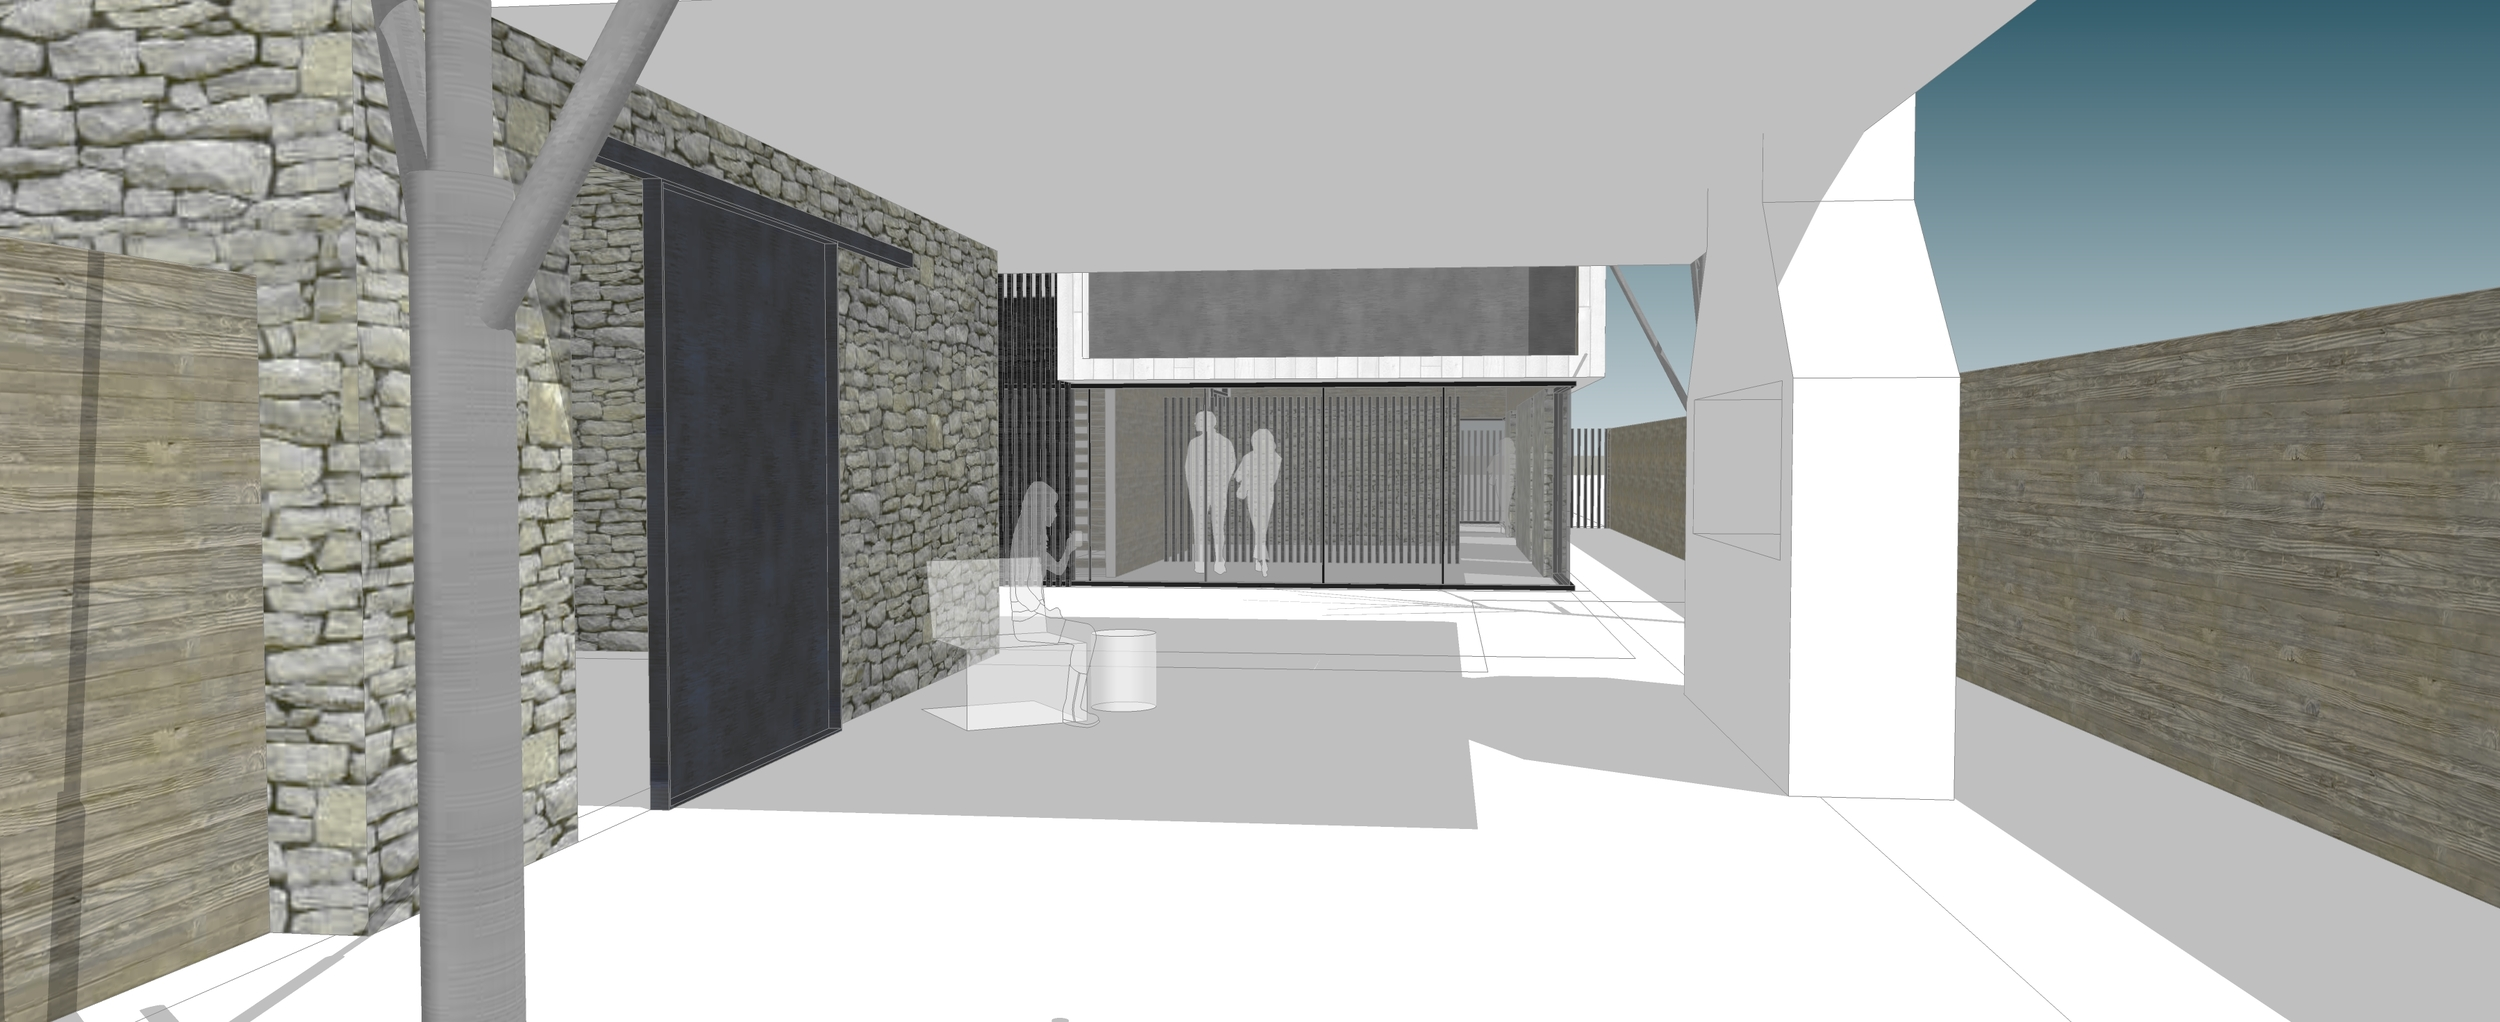 Scheme MQ View from Quincho to House